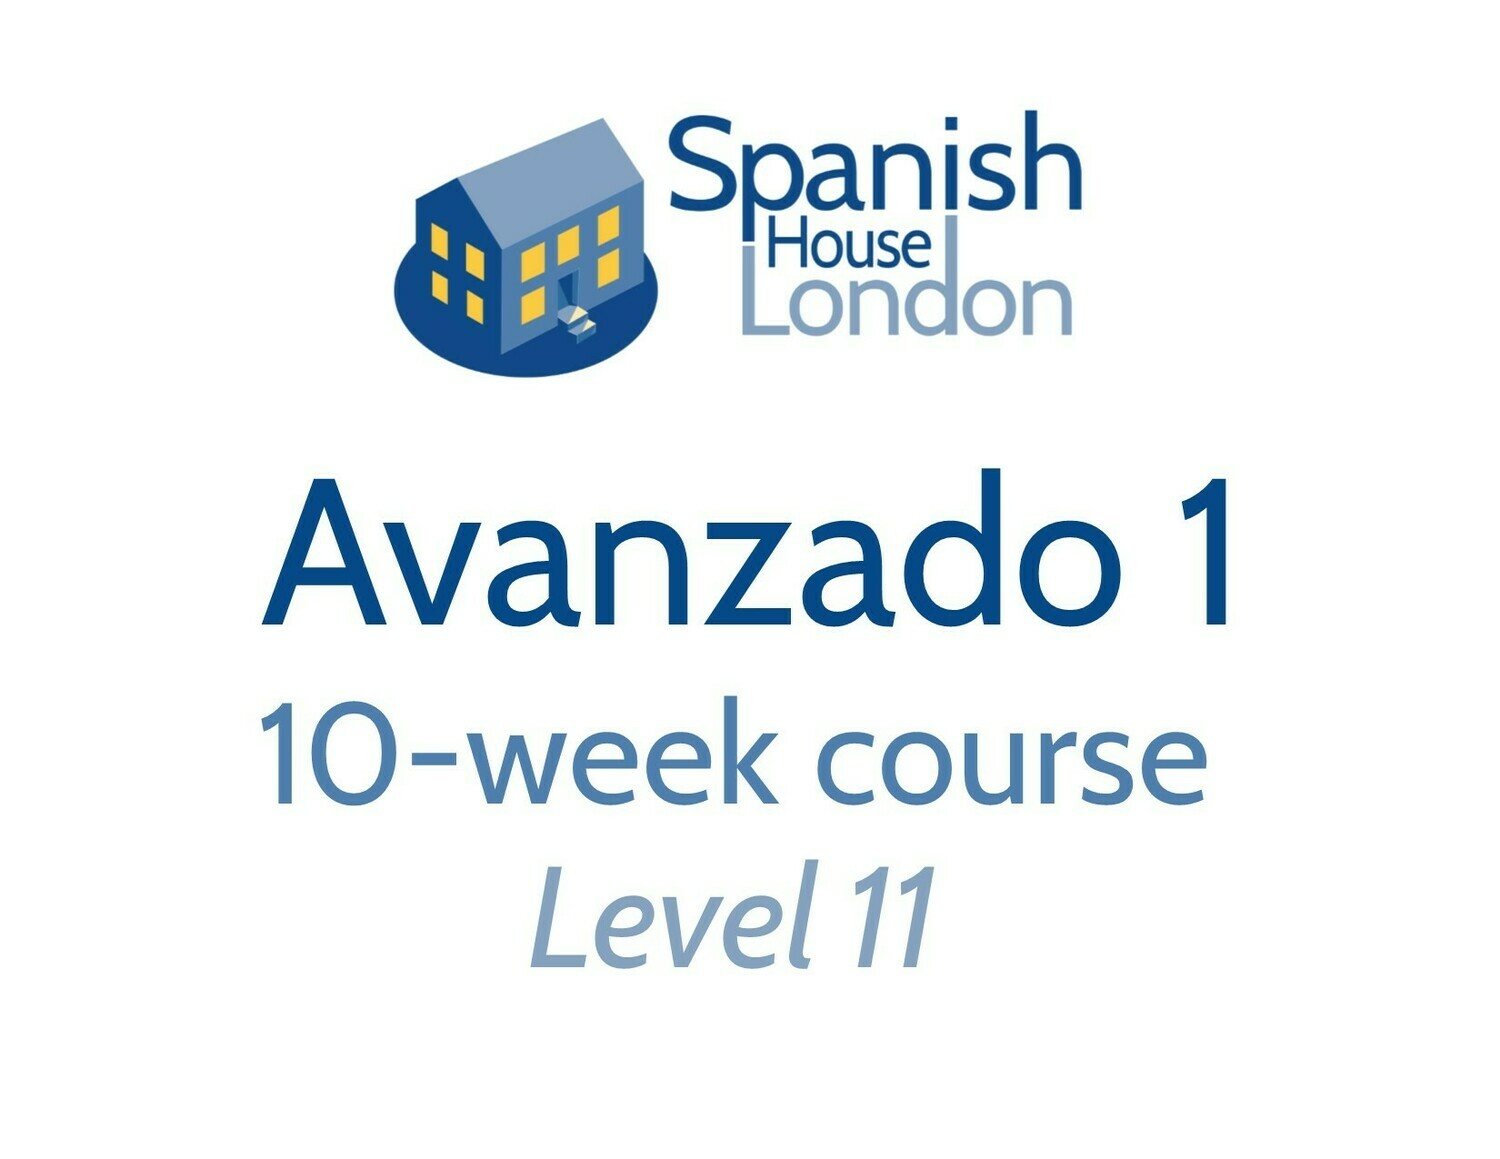 Avanzado 1 Course starting on 14th April at 6pm